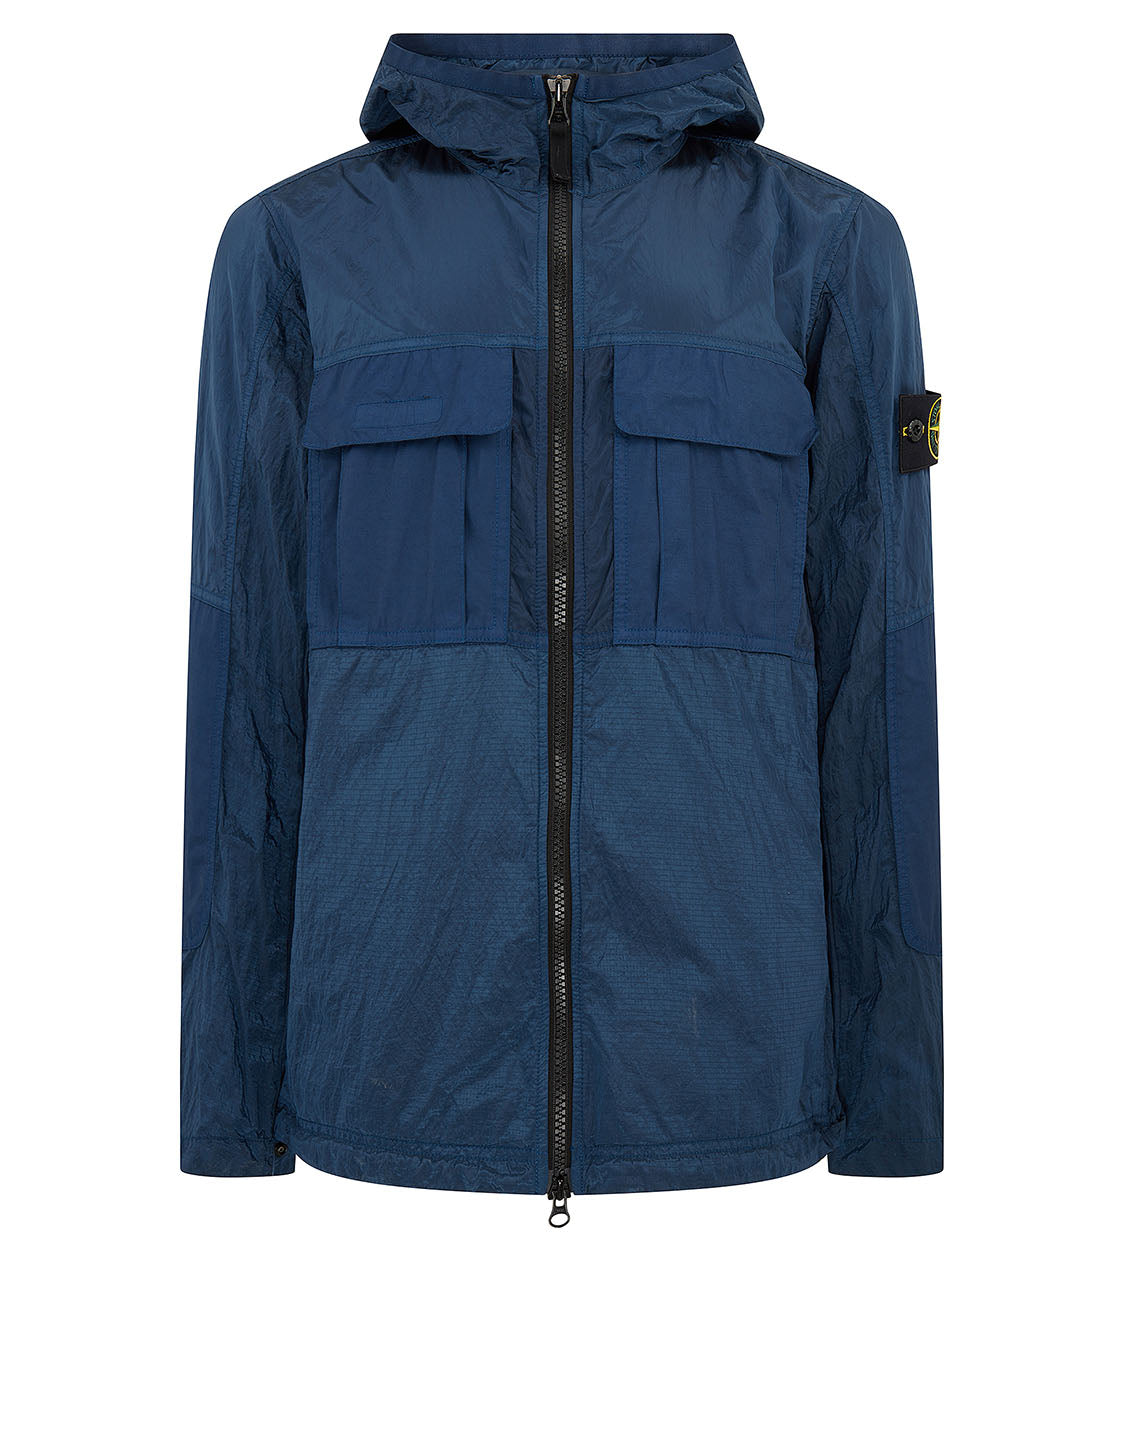 43632 NYLON METAL WATRO RIPSTOP Jacket in Blue Marine